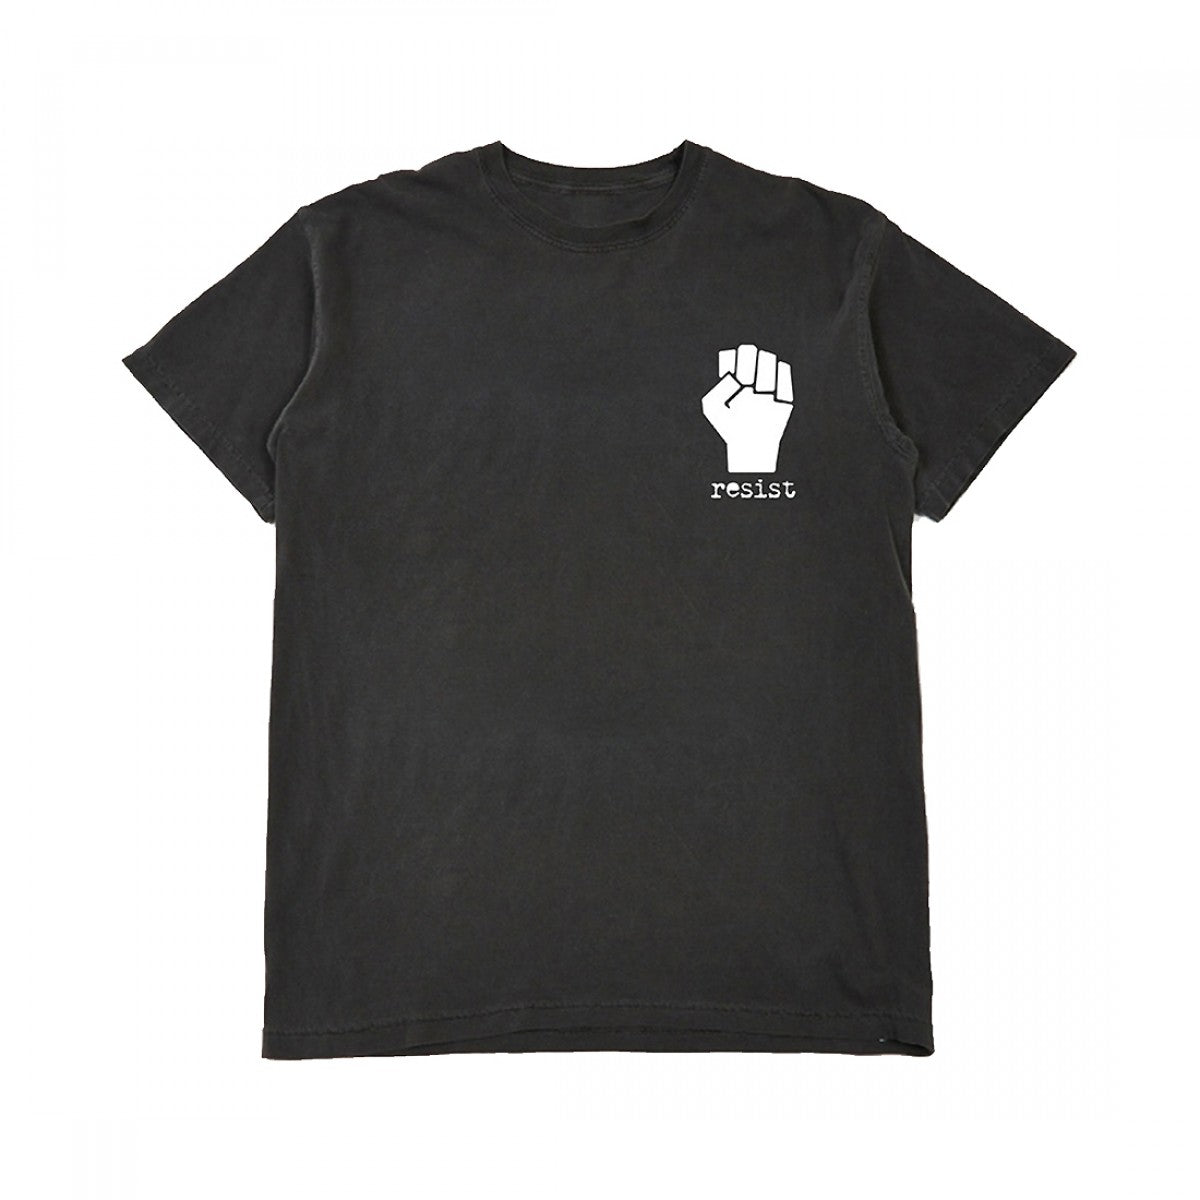 grandson fist pocket tee